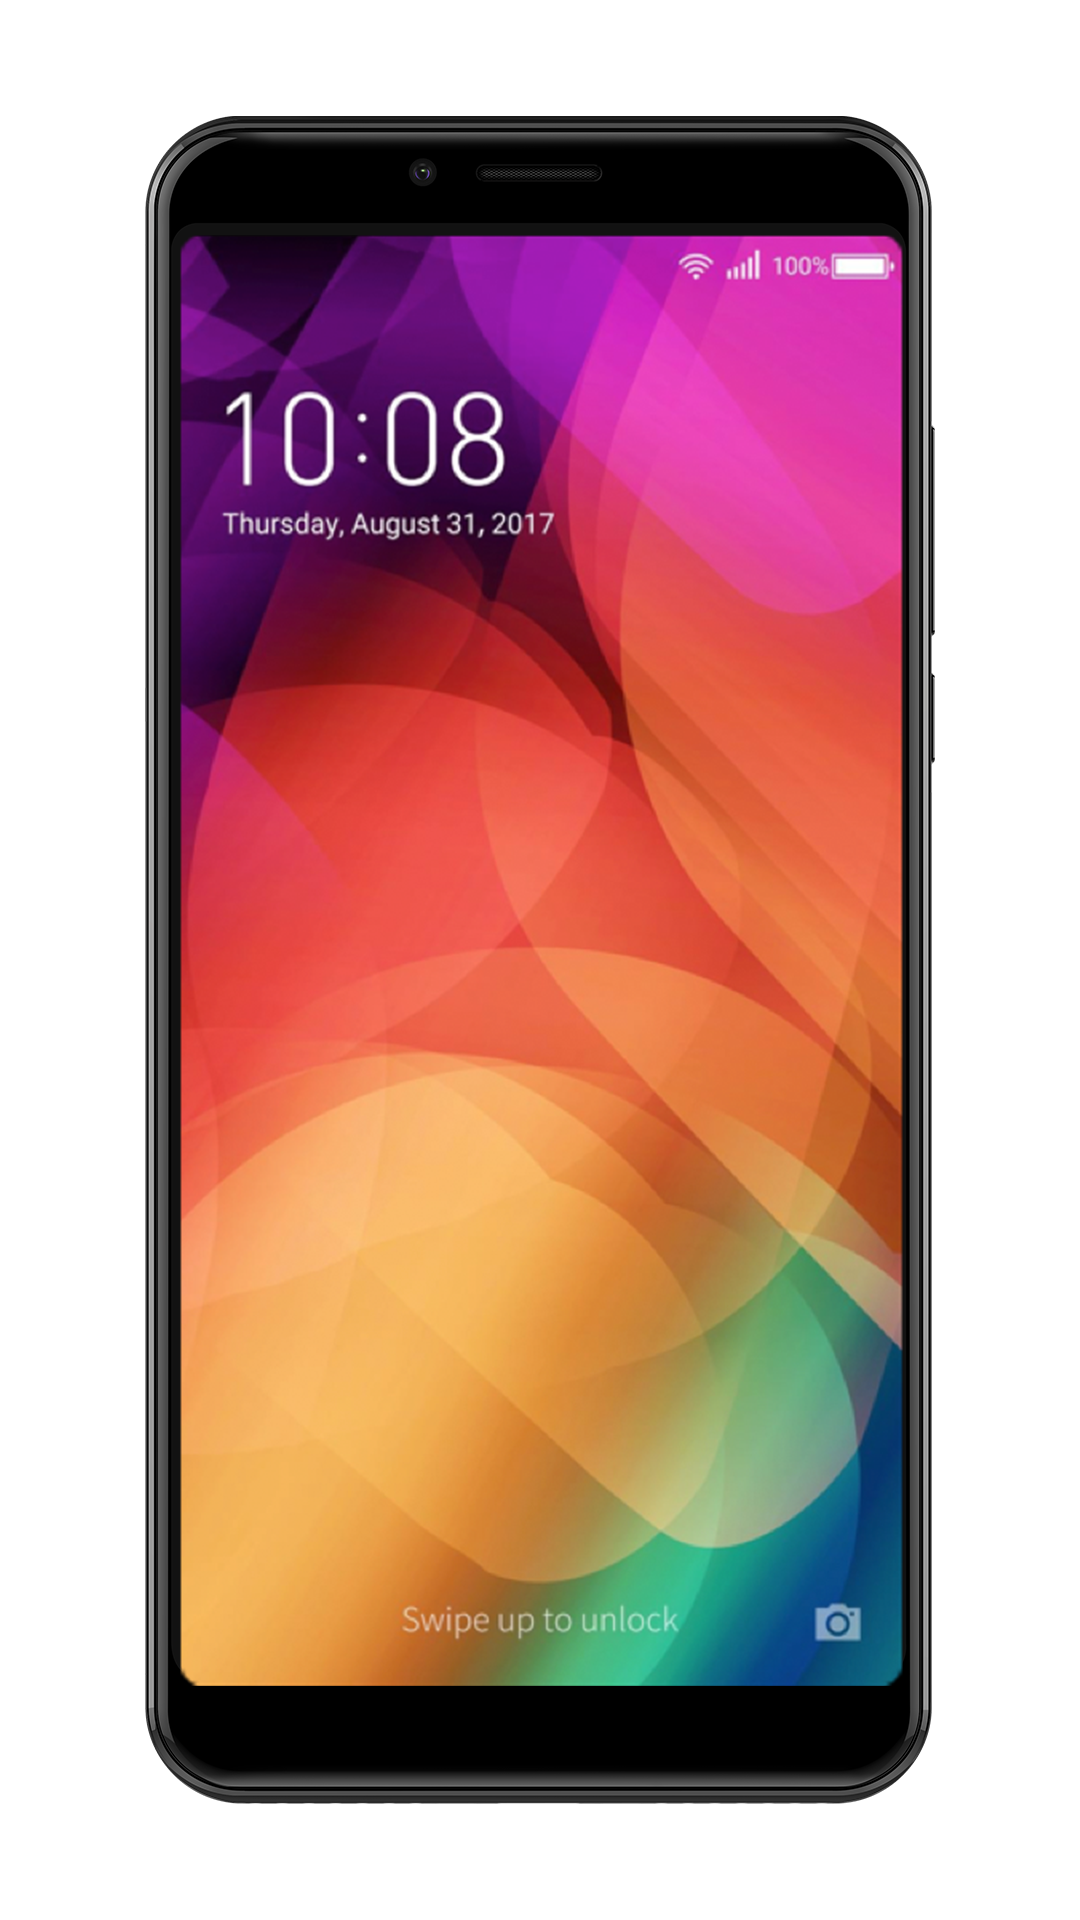 https://assetscdn1.paytm.com/images/catalog/product/M/MO/MOBCOOLPAD-NOTEMOBI229435E651FE7/9.png